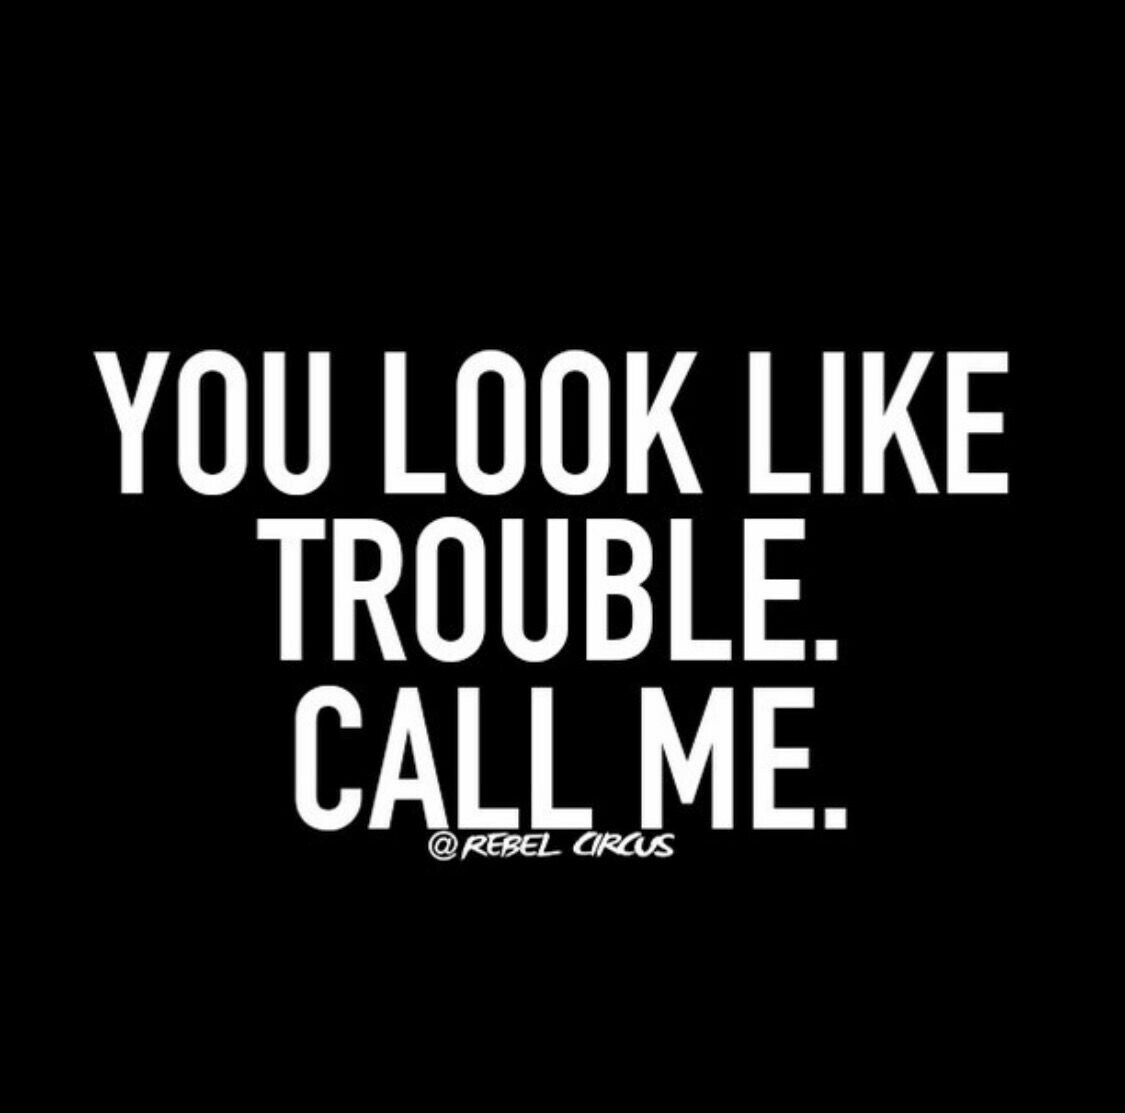 Pin By Despina Zil On Perv Thoughts Flirty Quotes Funny Flirty Quotes Sarcasm Quotes